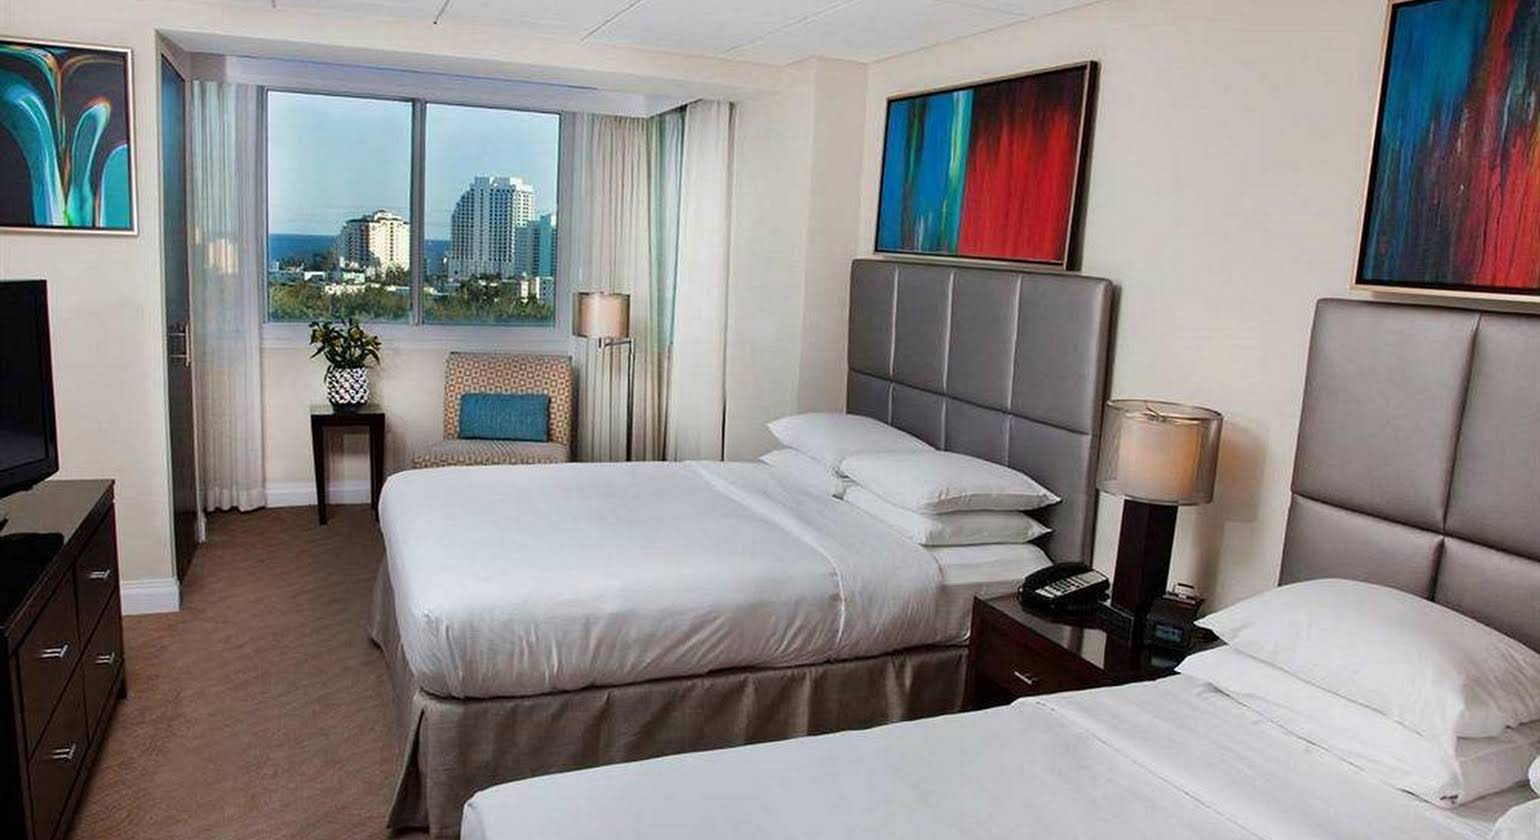 Gallery ONE - A DoubleTree Suites by Hilton Hotel